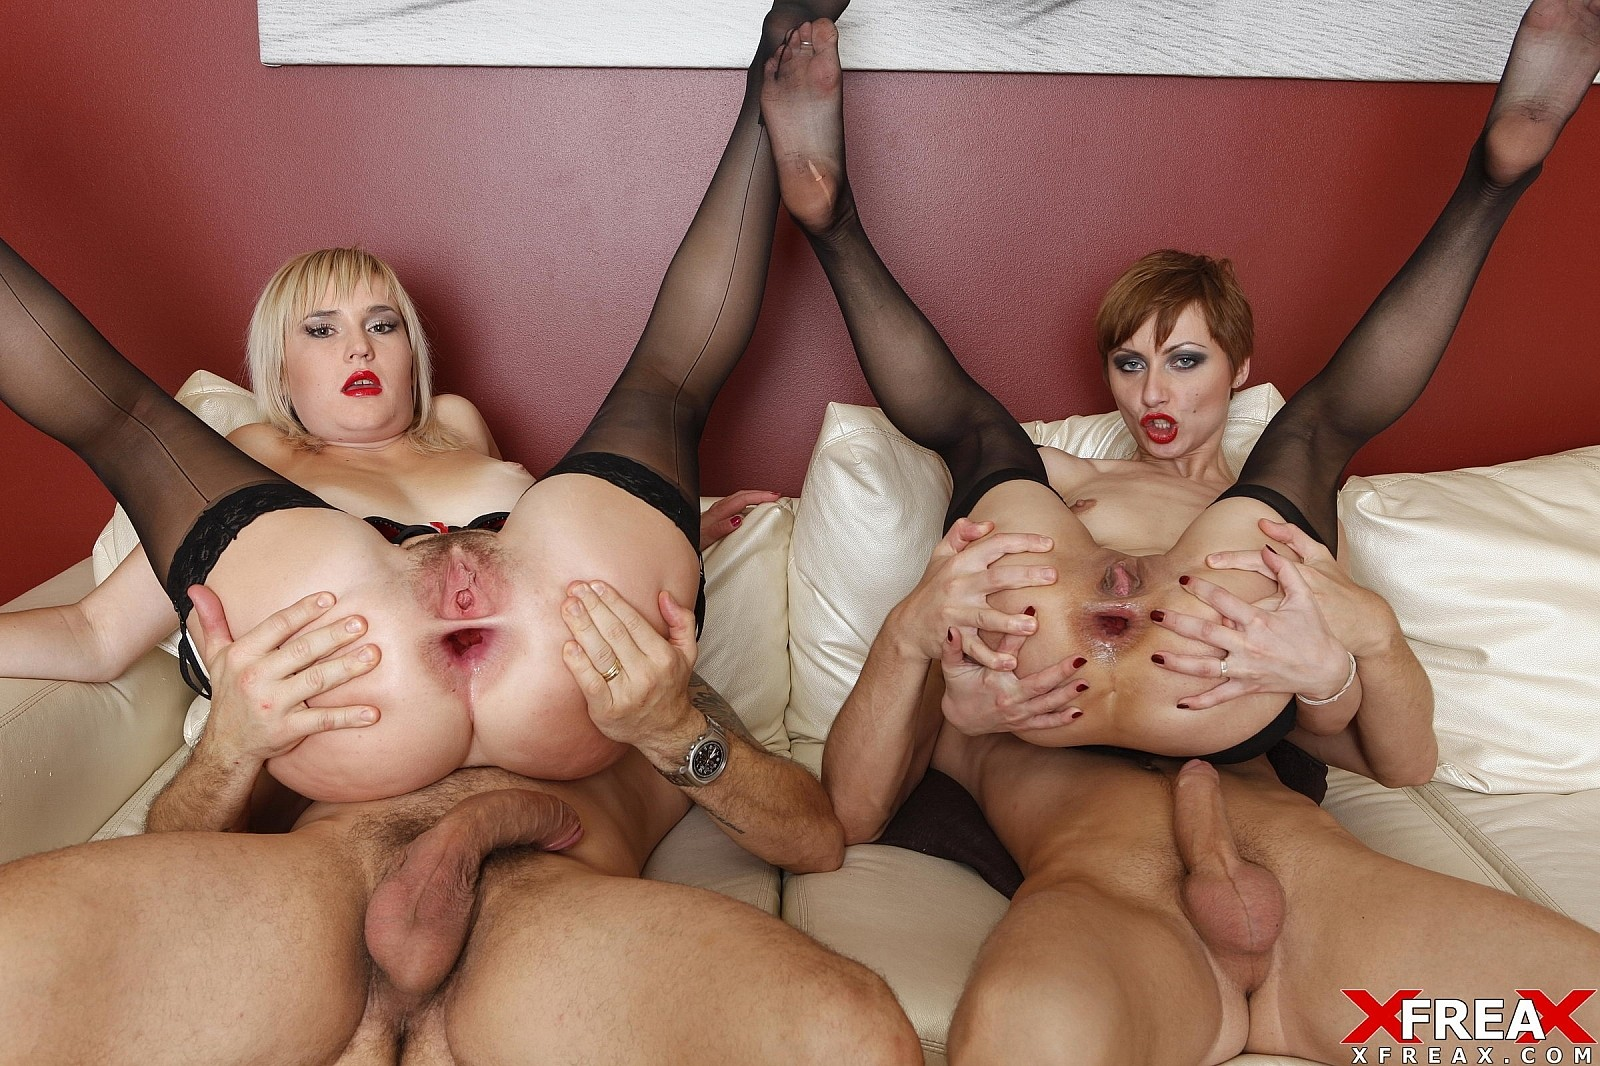 Hubby watches wife give blow job